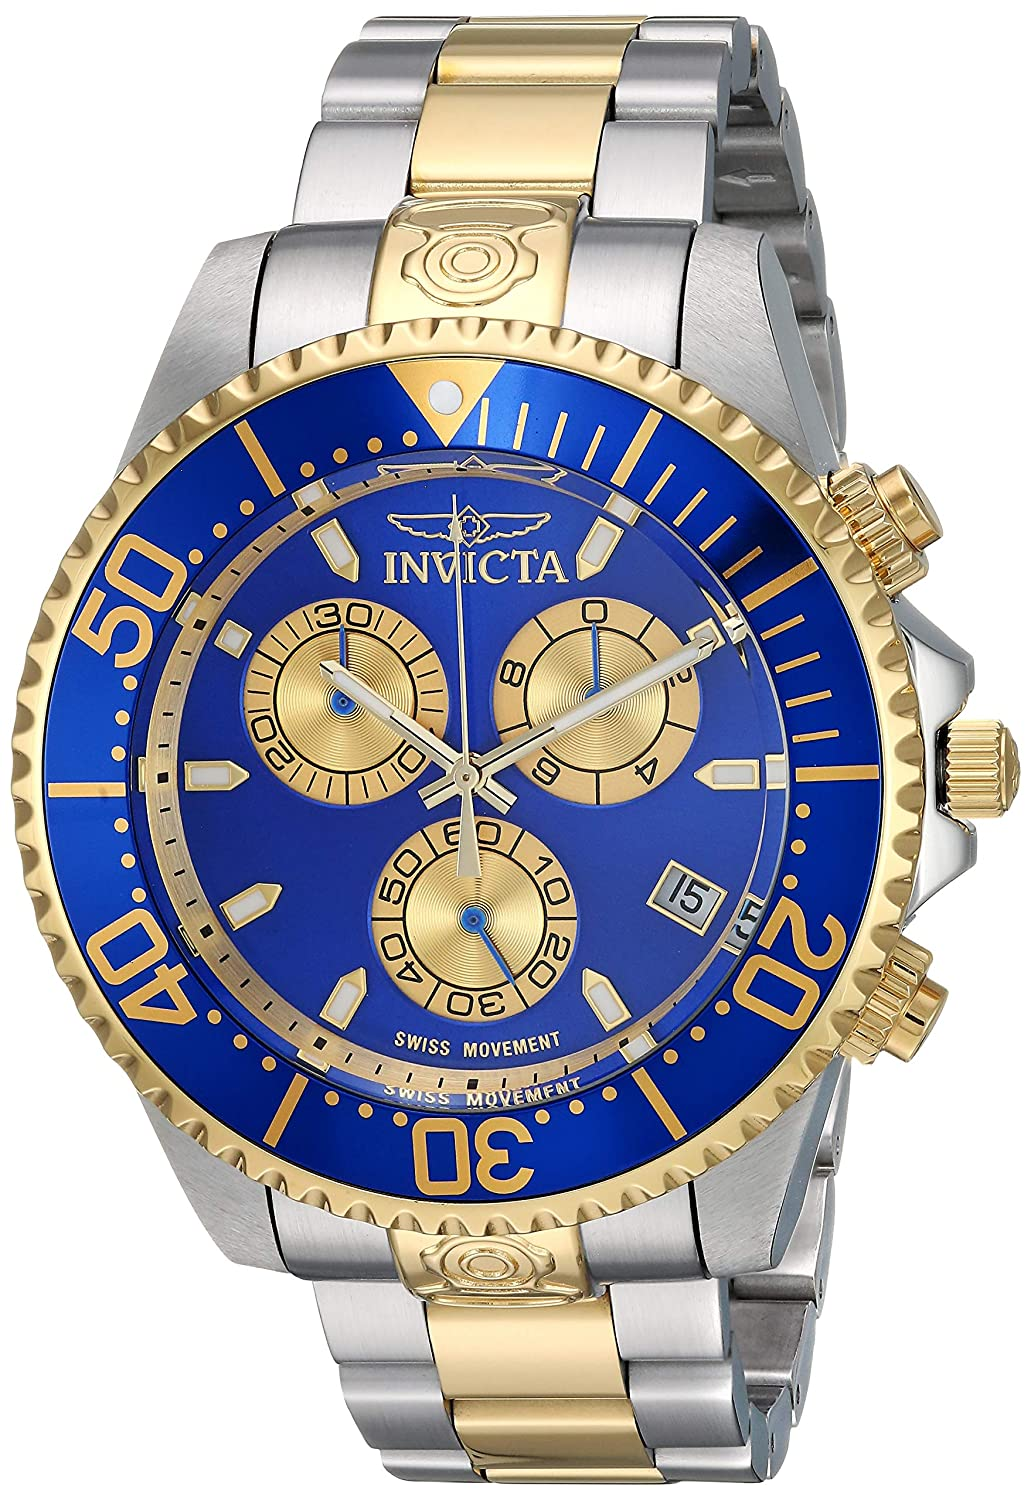 Invicta Men s Pro Diver Quartz Diving Watch with Stainless-Steel Strap, Two Tone, 21.7 Model 26851